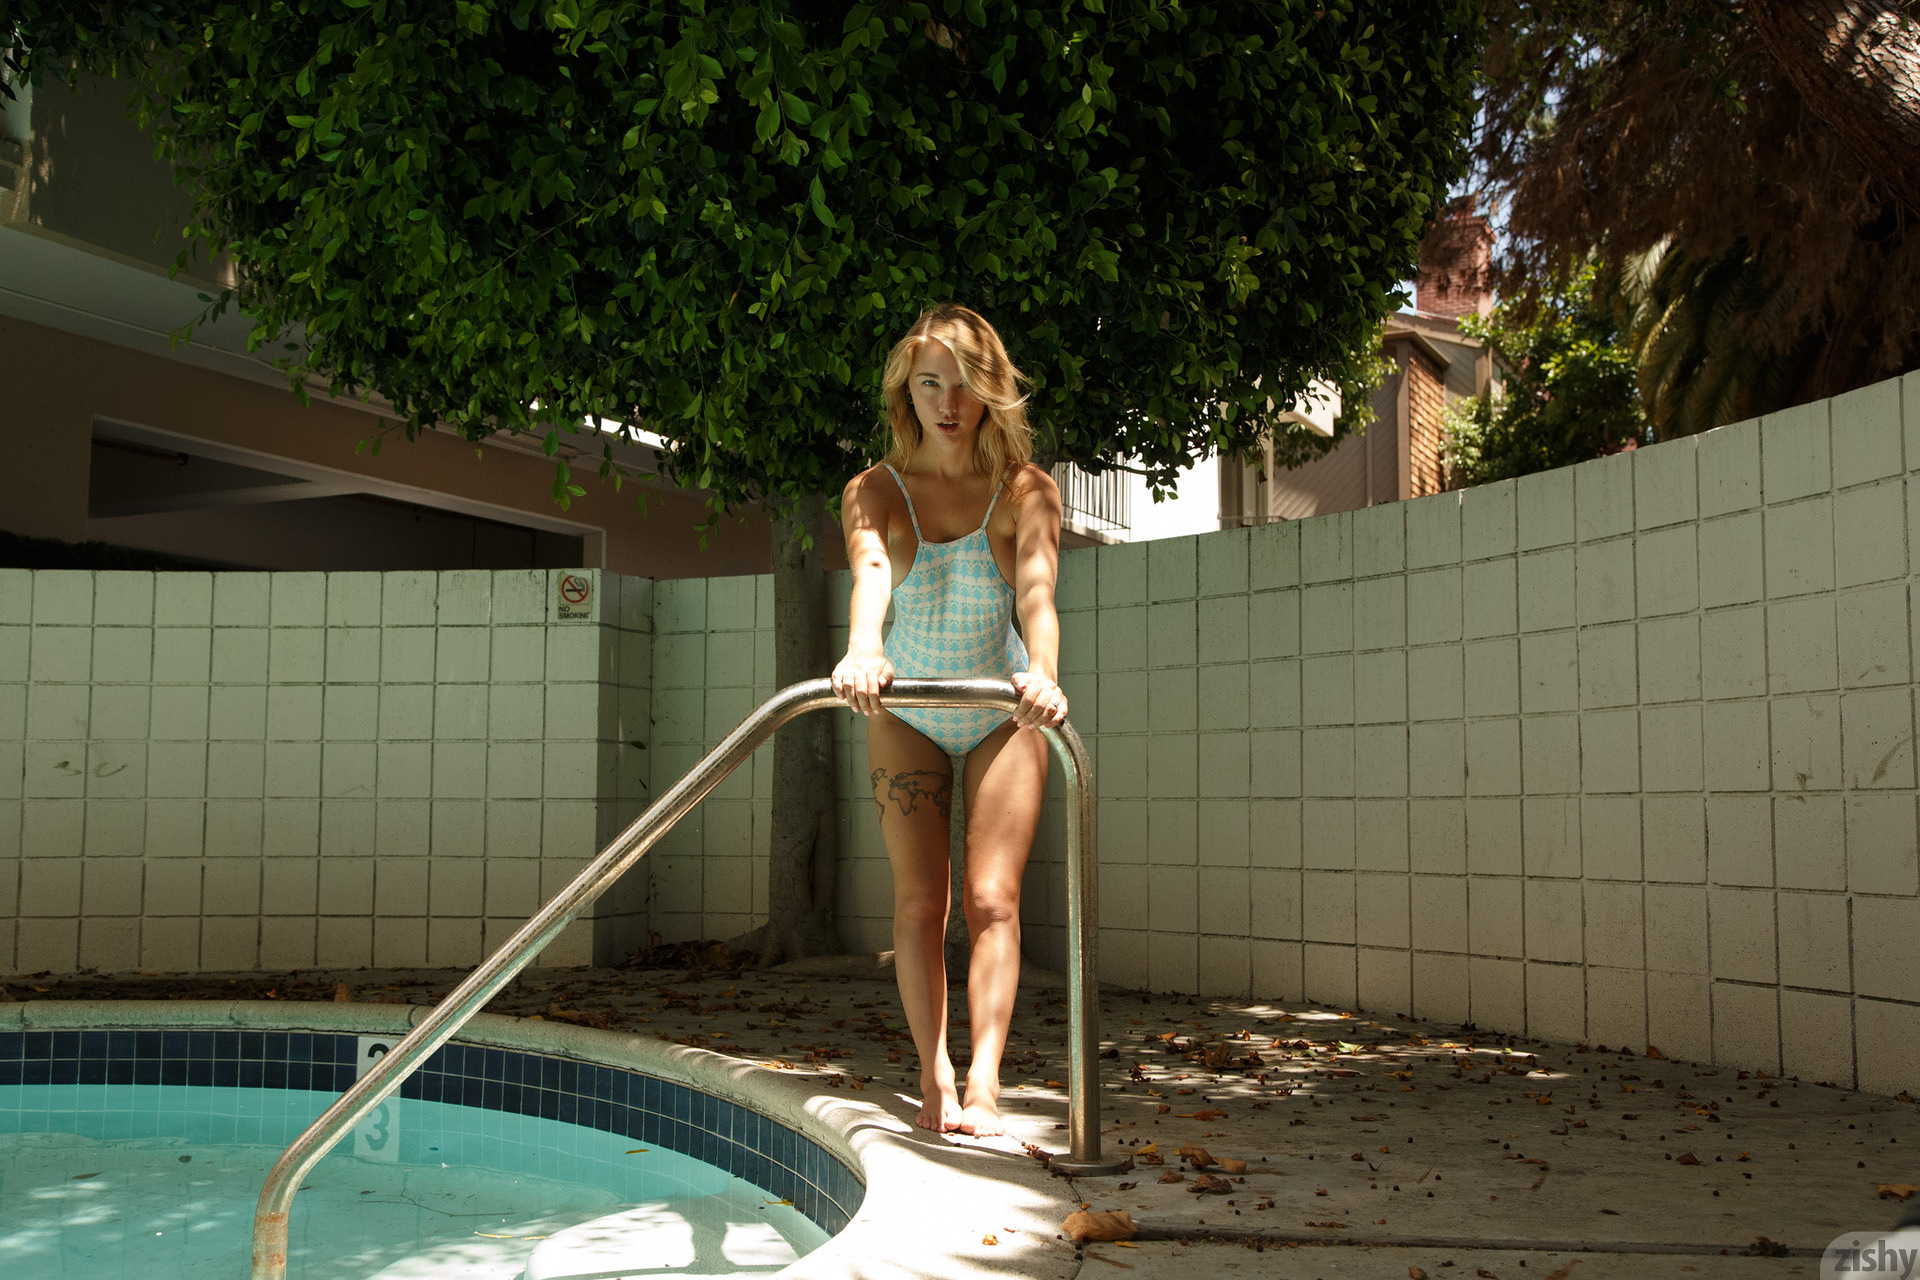 Lily Ivy Poolside Feminism 0020